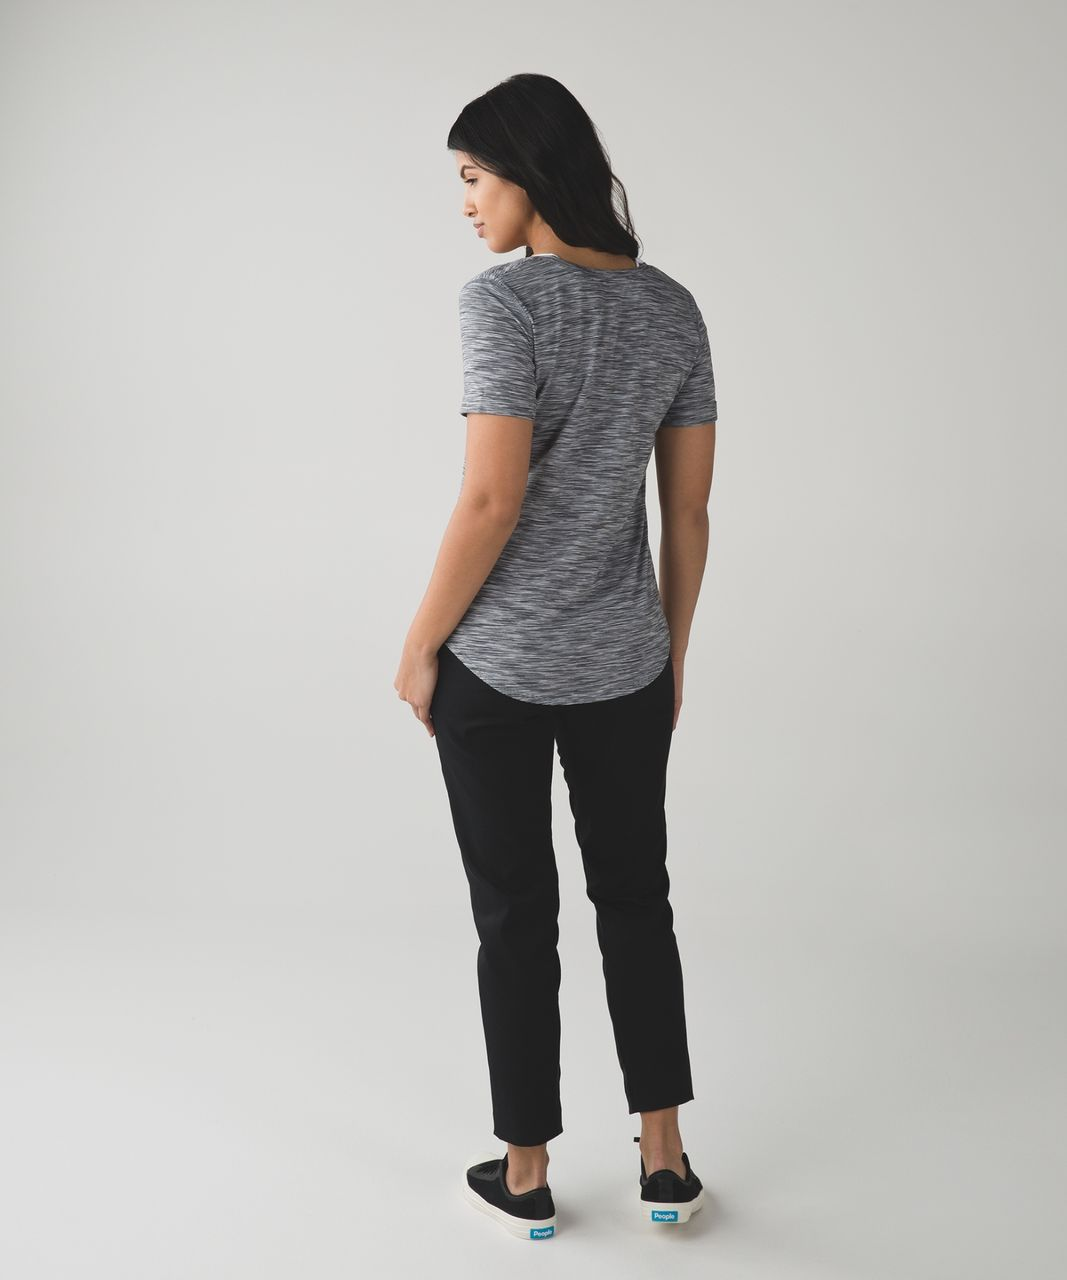 Lululemon Love Tee II - 4 Color Space Dye White Black